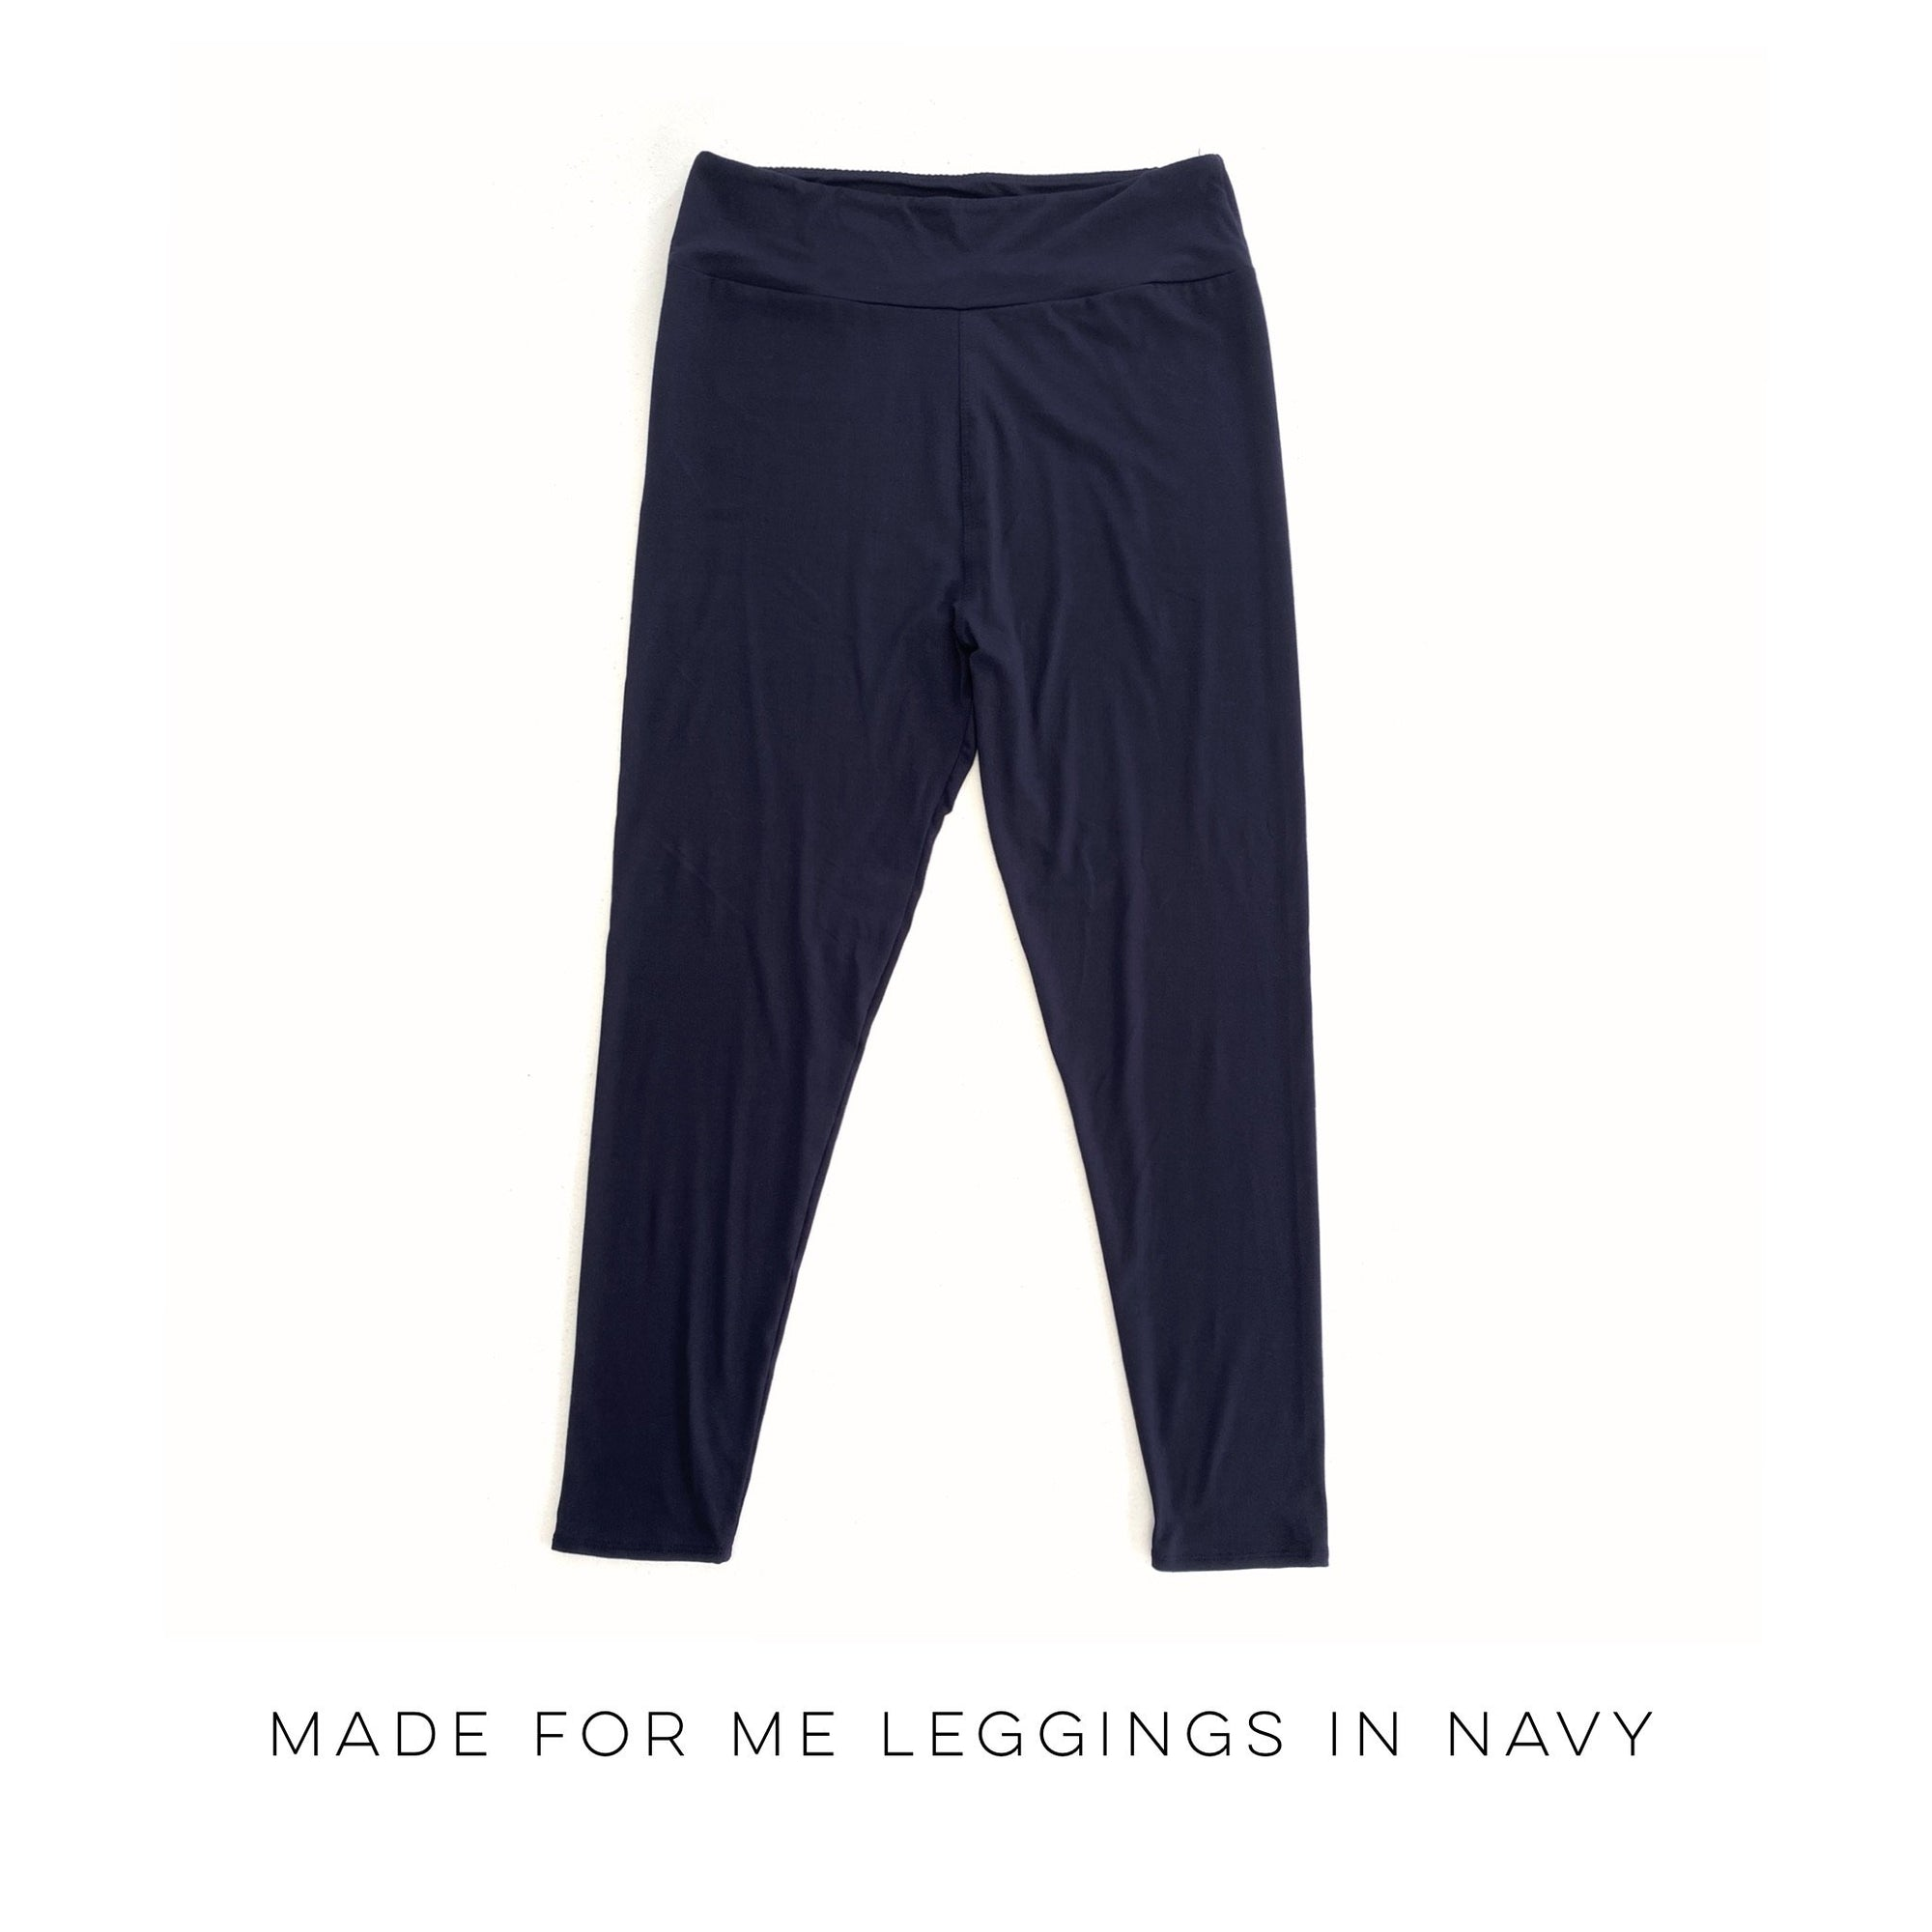 Made for Me Leggings in Navy